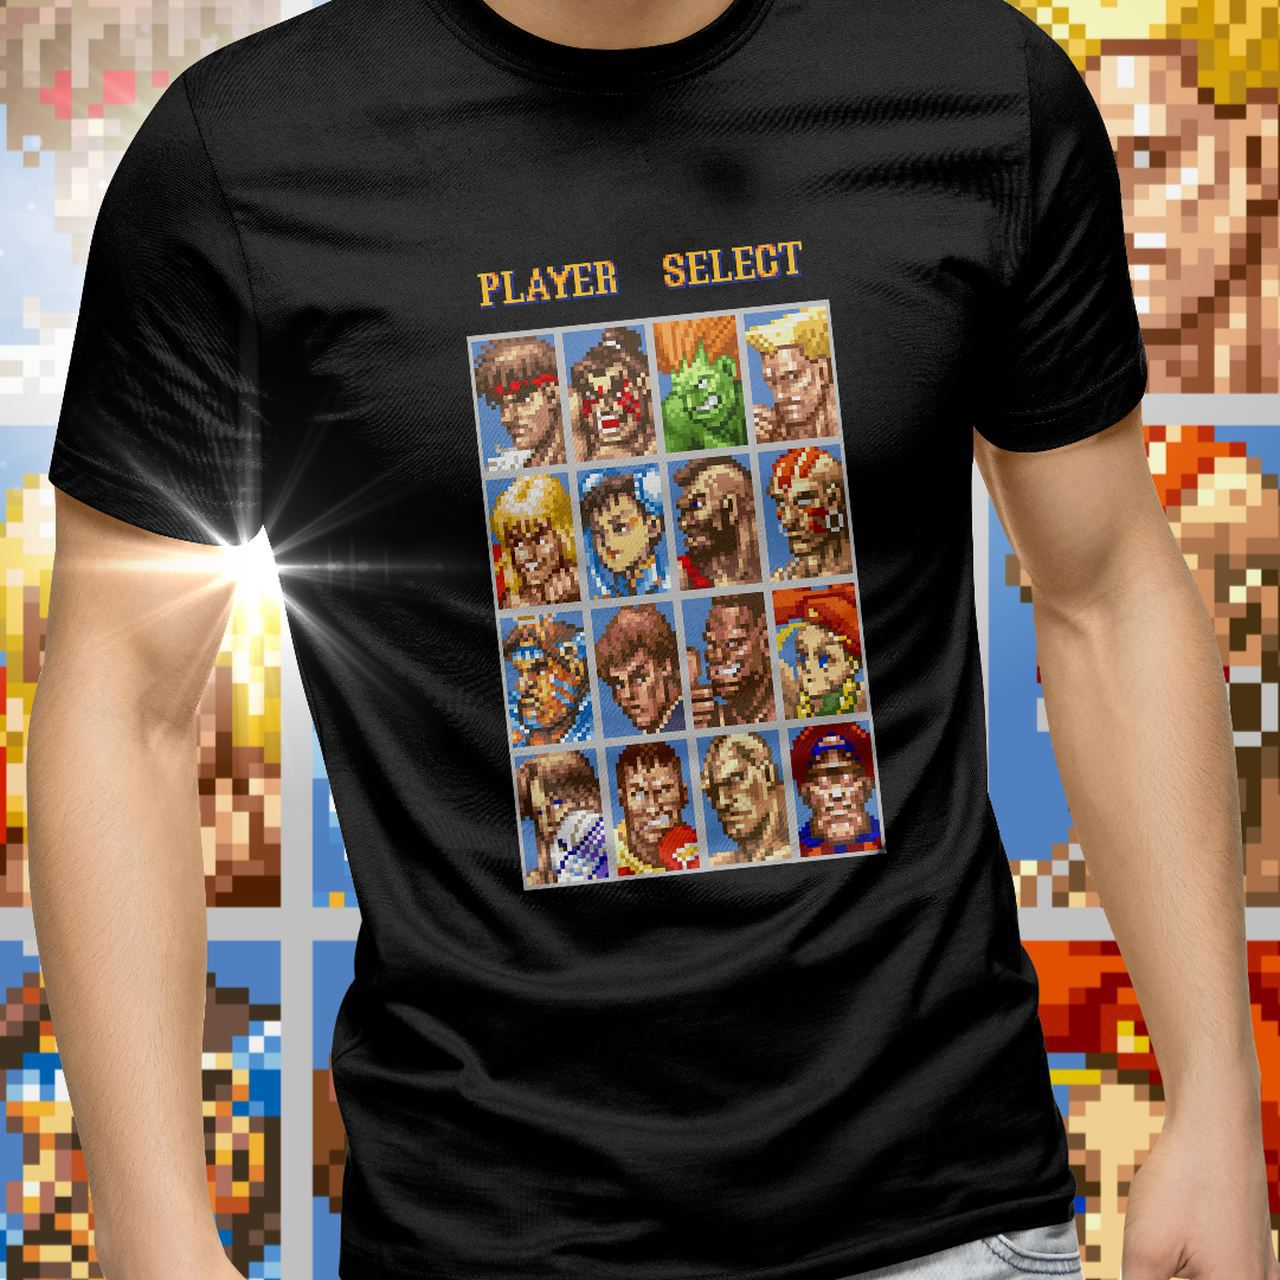 Camiseta Super Street Fighter 2 (Player Select) - Exclusiva ToyShow